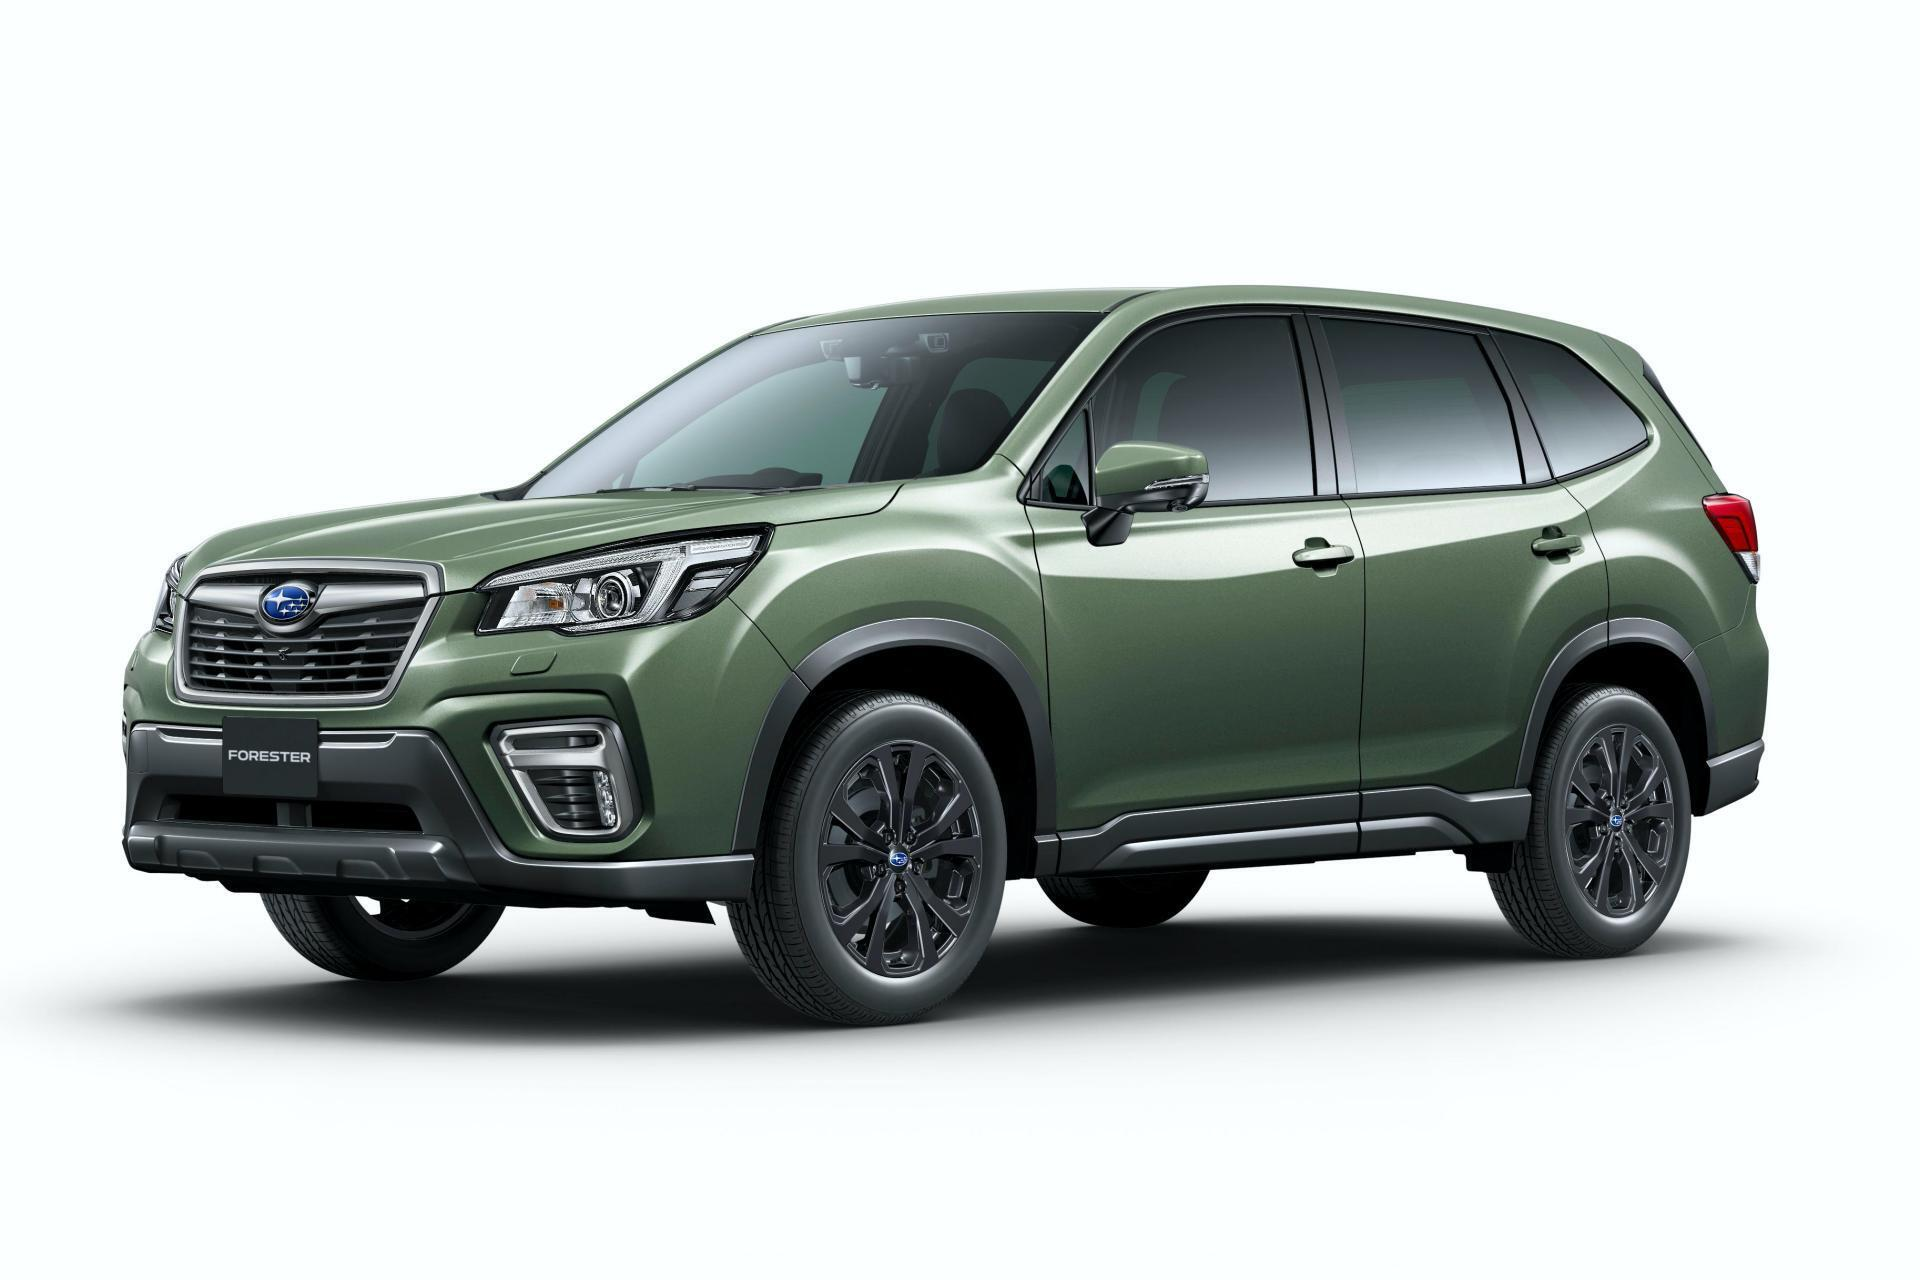 subaru-forester-phien-ban-x-edition-ra-mat-voi-noi-that-chong-nuoc